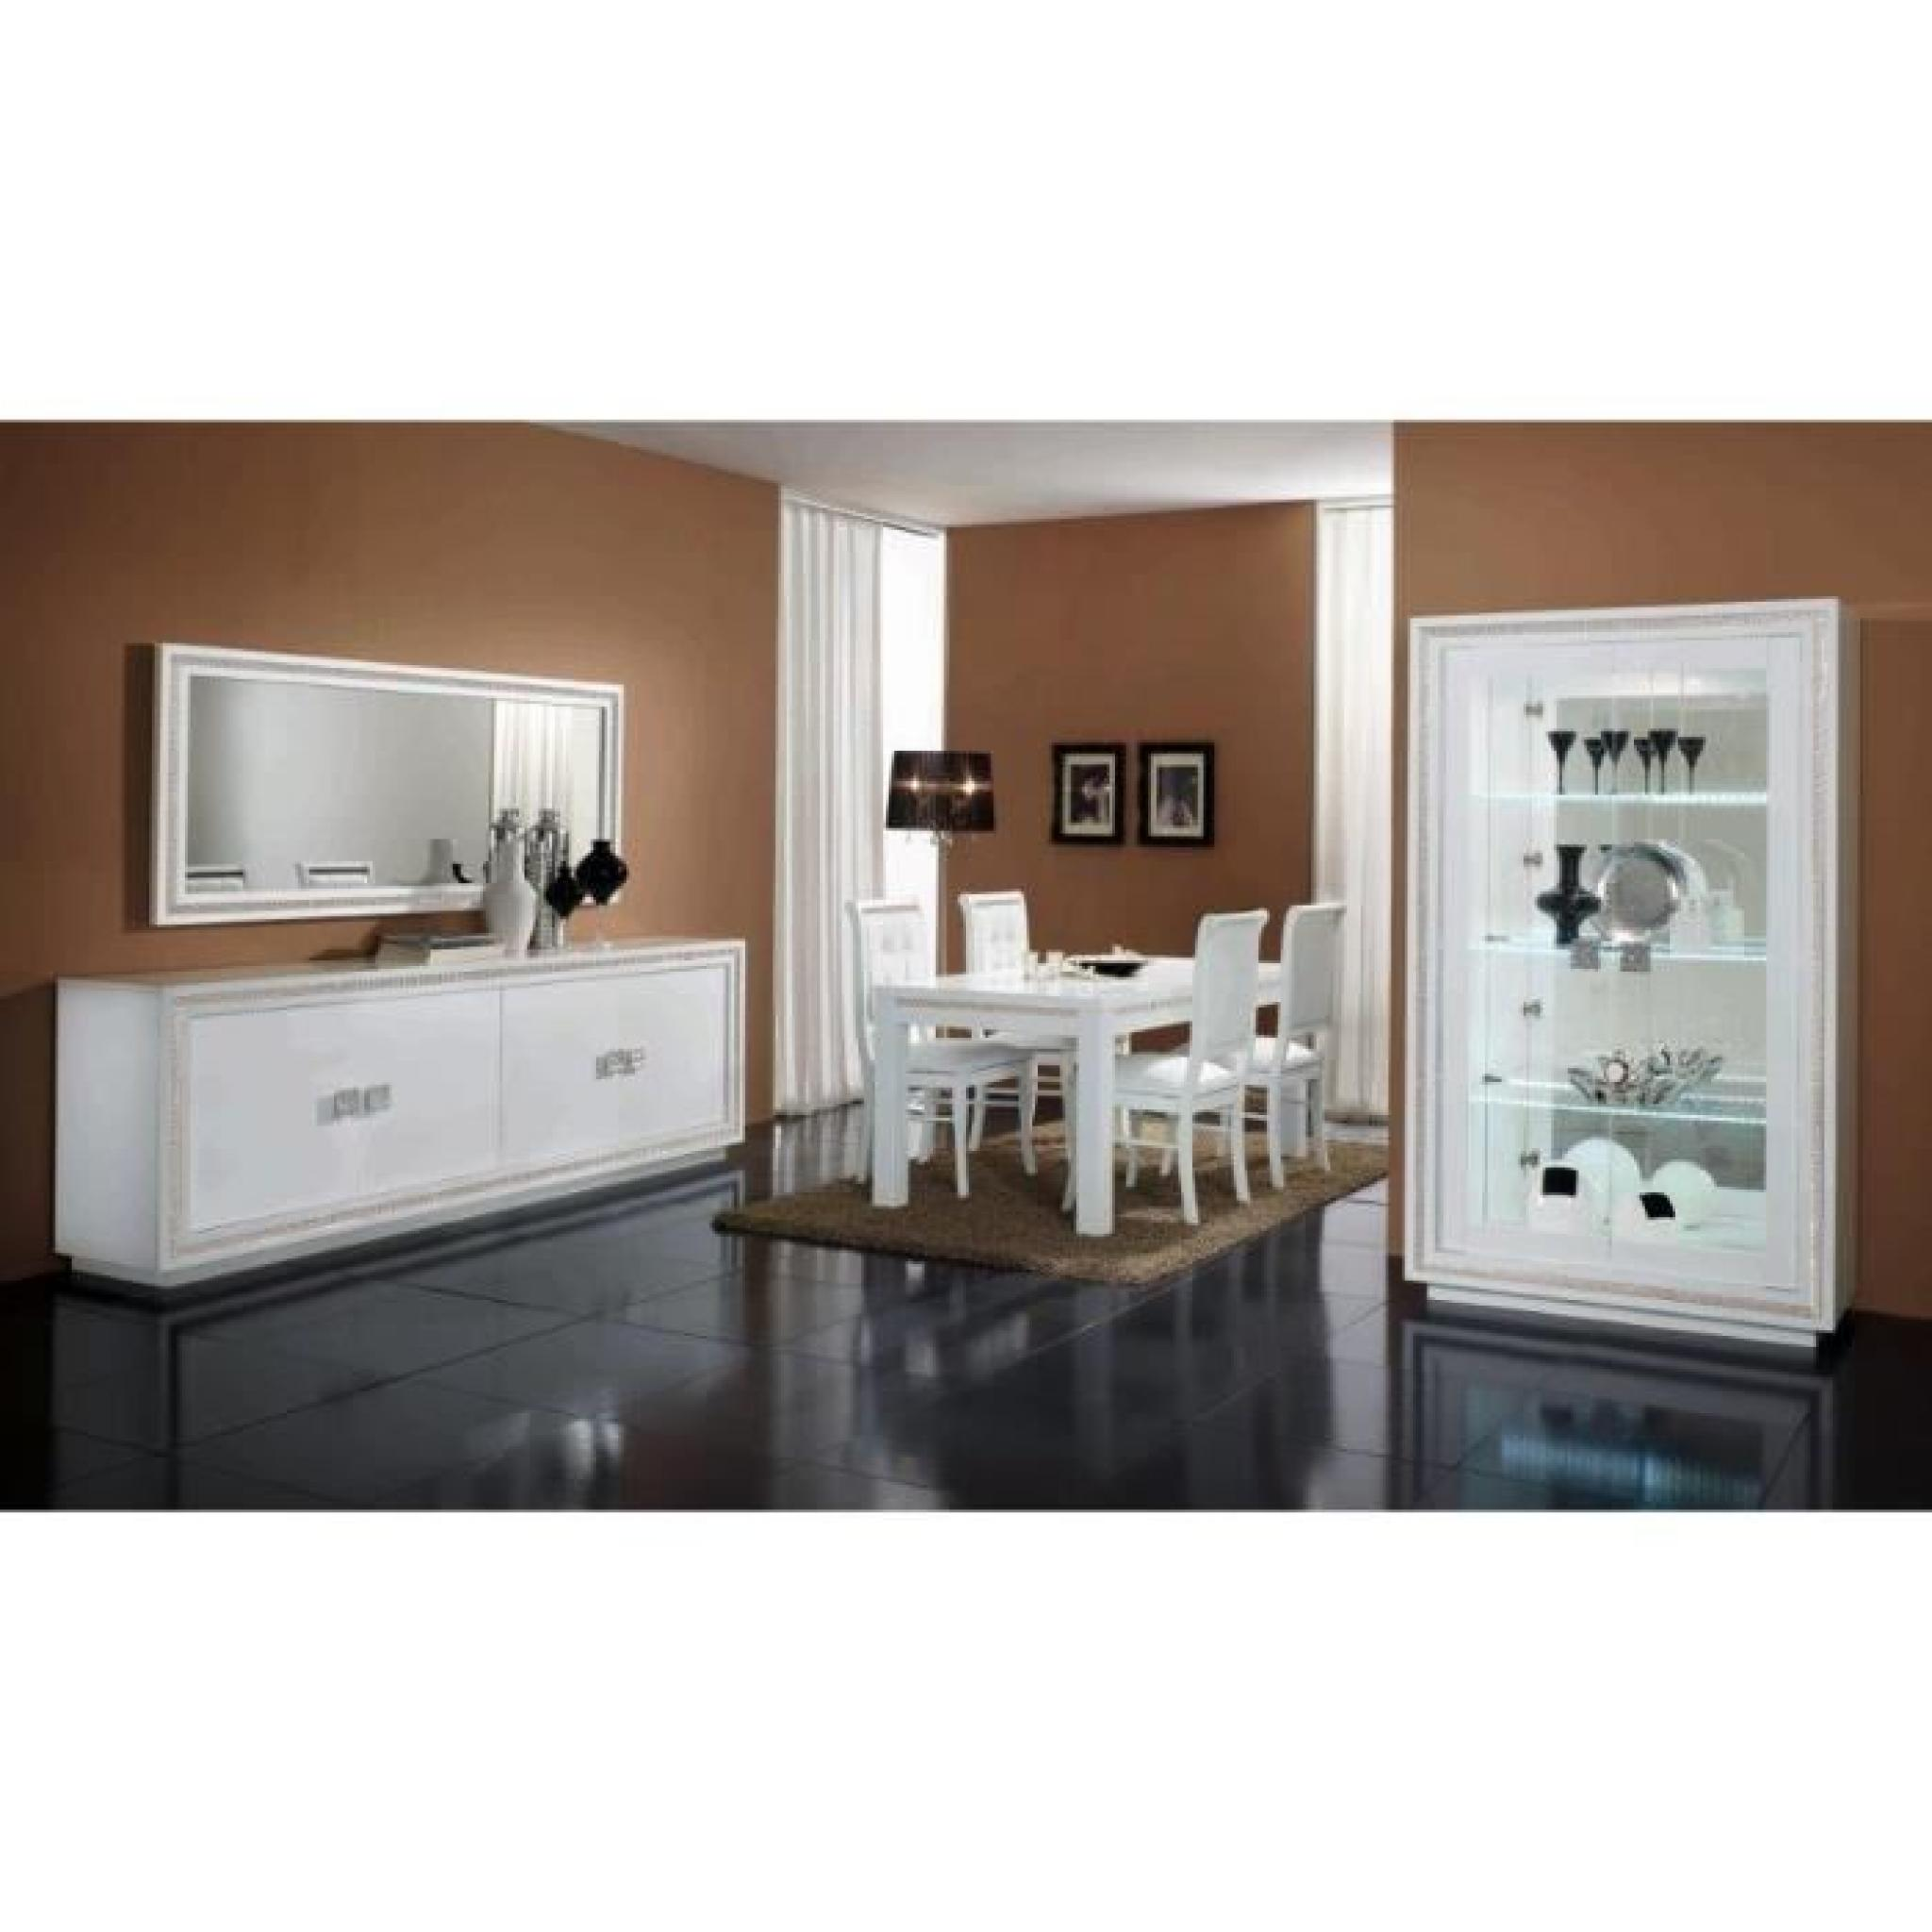 prestige laque blanche ensemble salle a manger vitrine 2. Black Bedroom Furniture Sets. Home Design Ideas